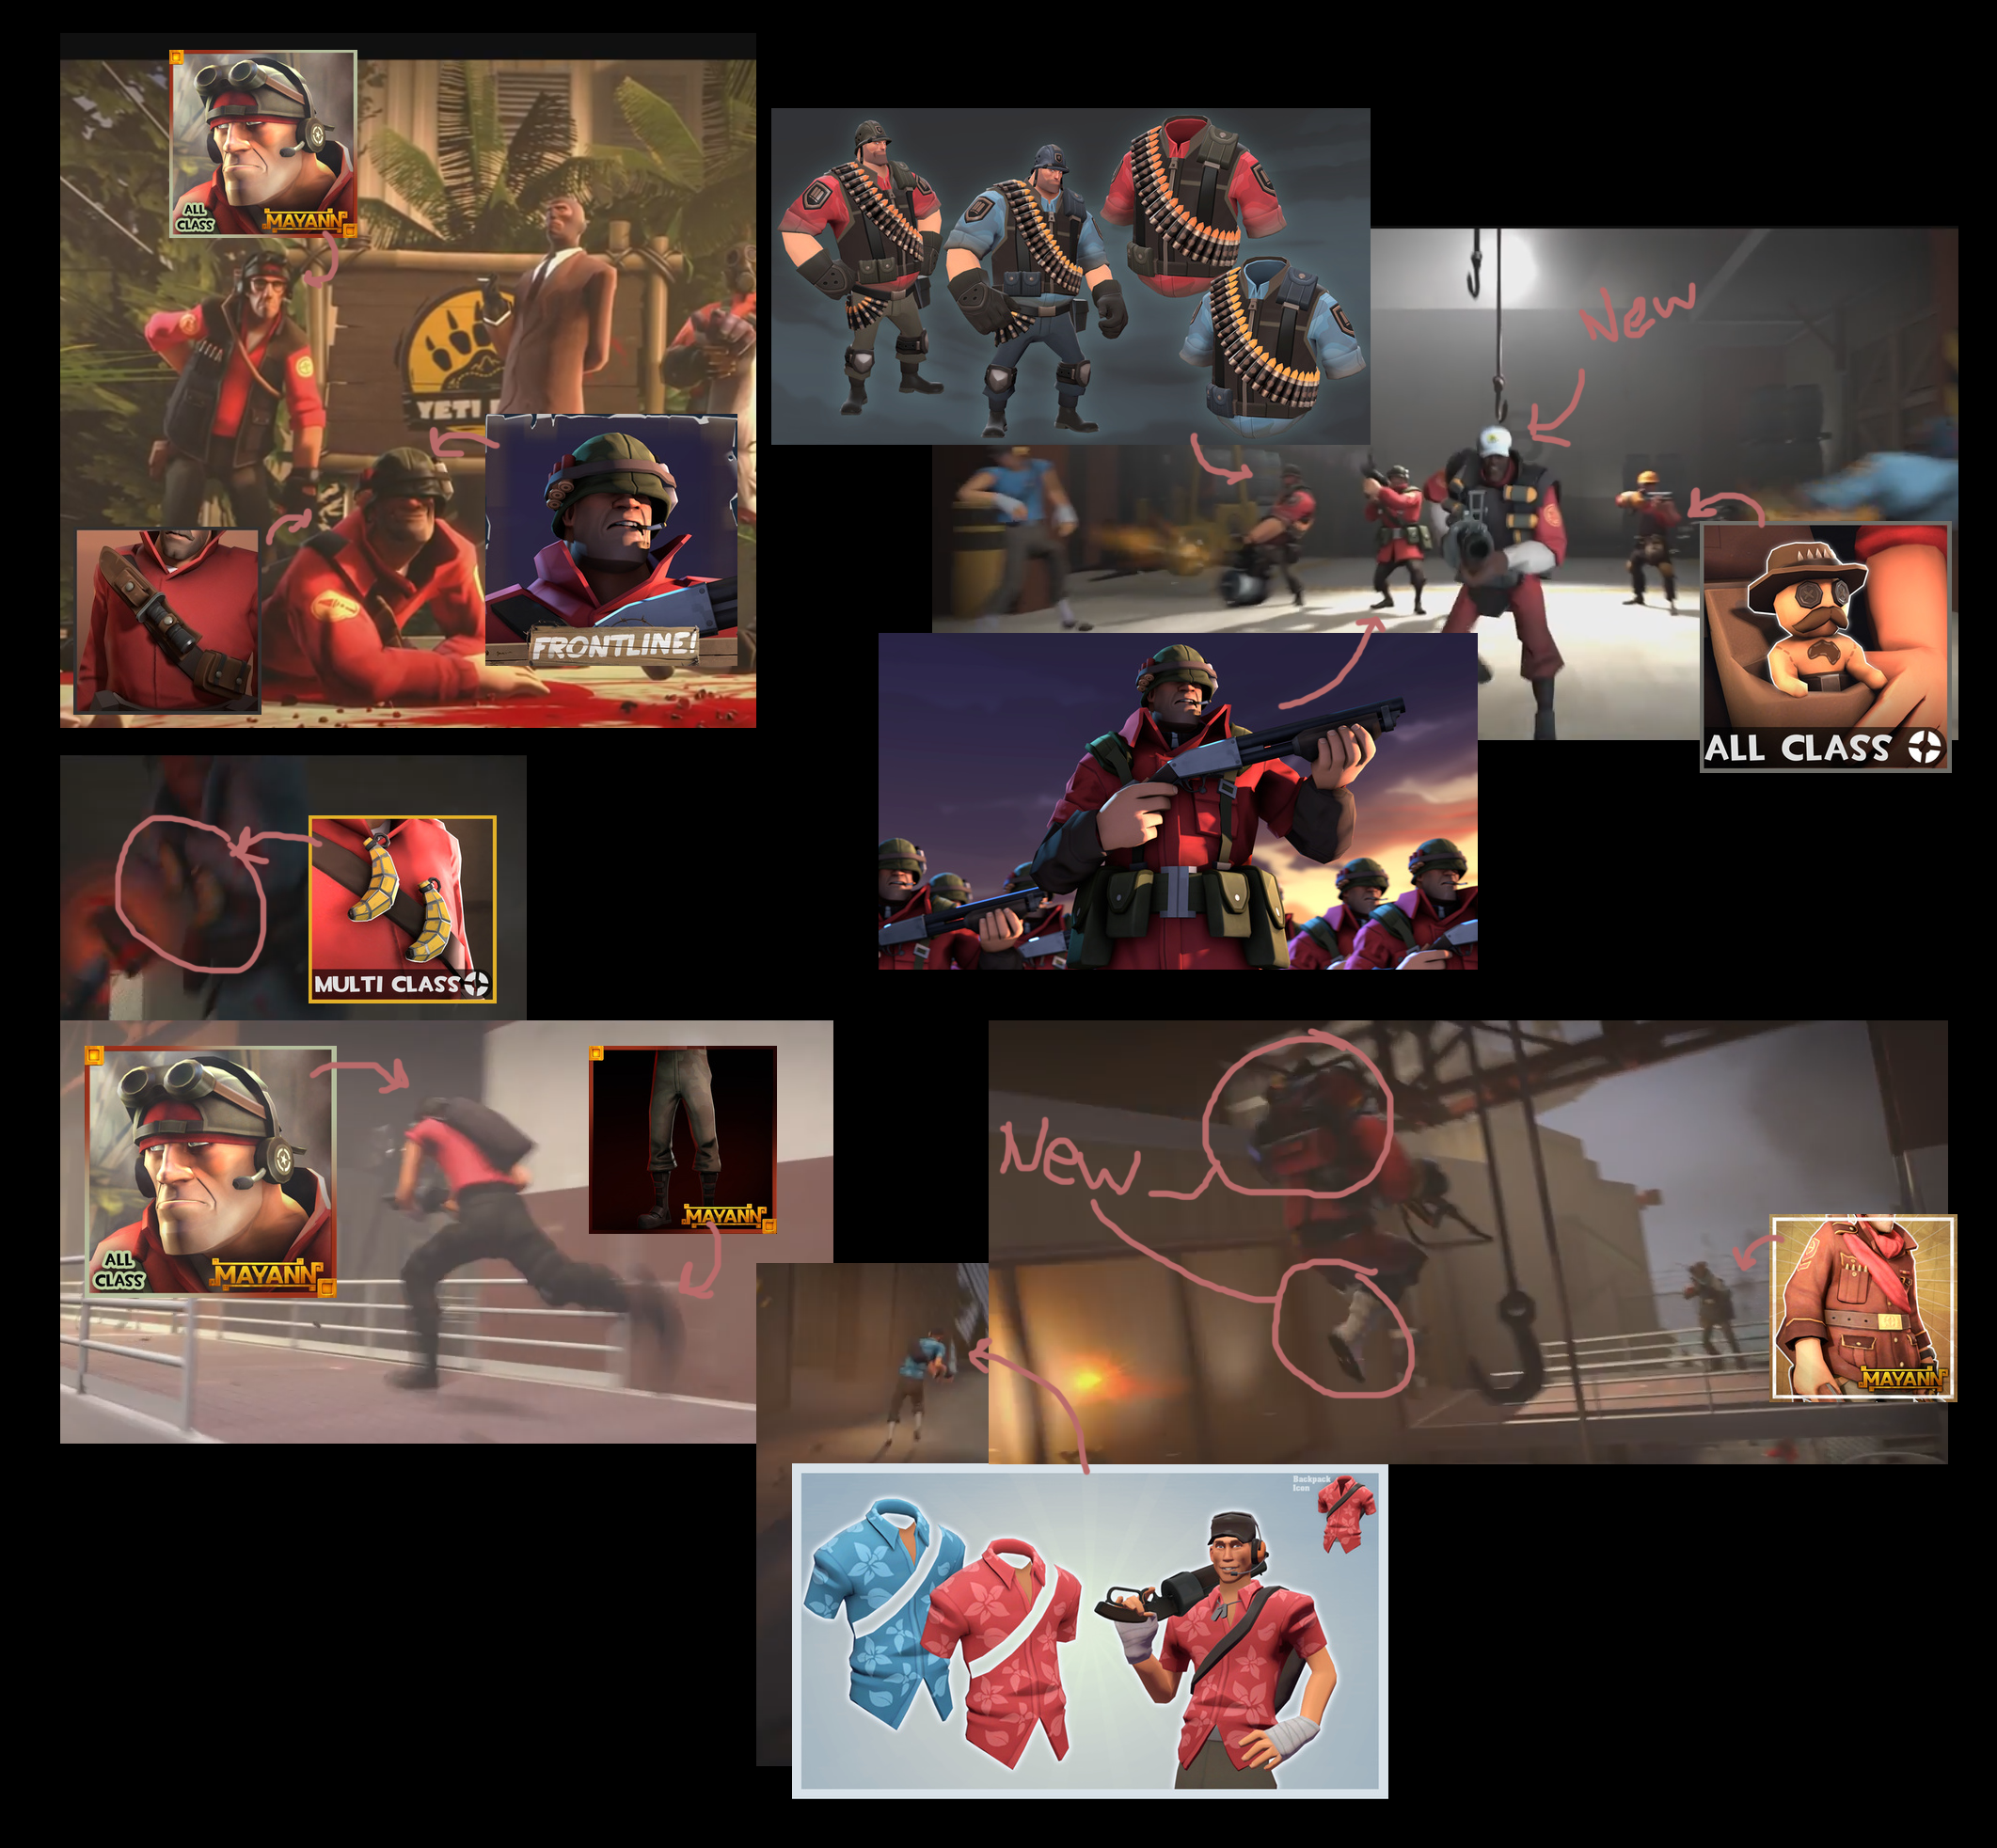 Tf2 soldier cosmetics quotes - Cosmetics I Found In The New Video Games Teamfortress2 Steam Tf2